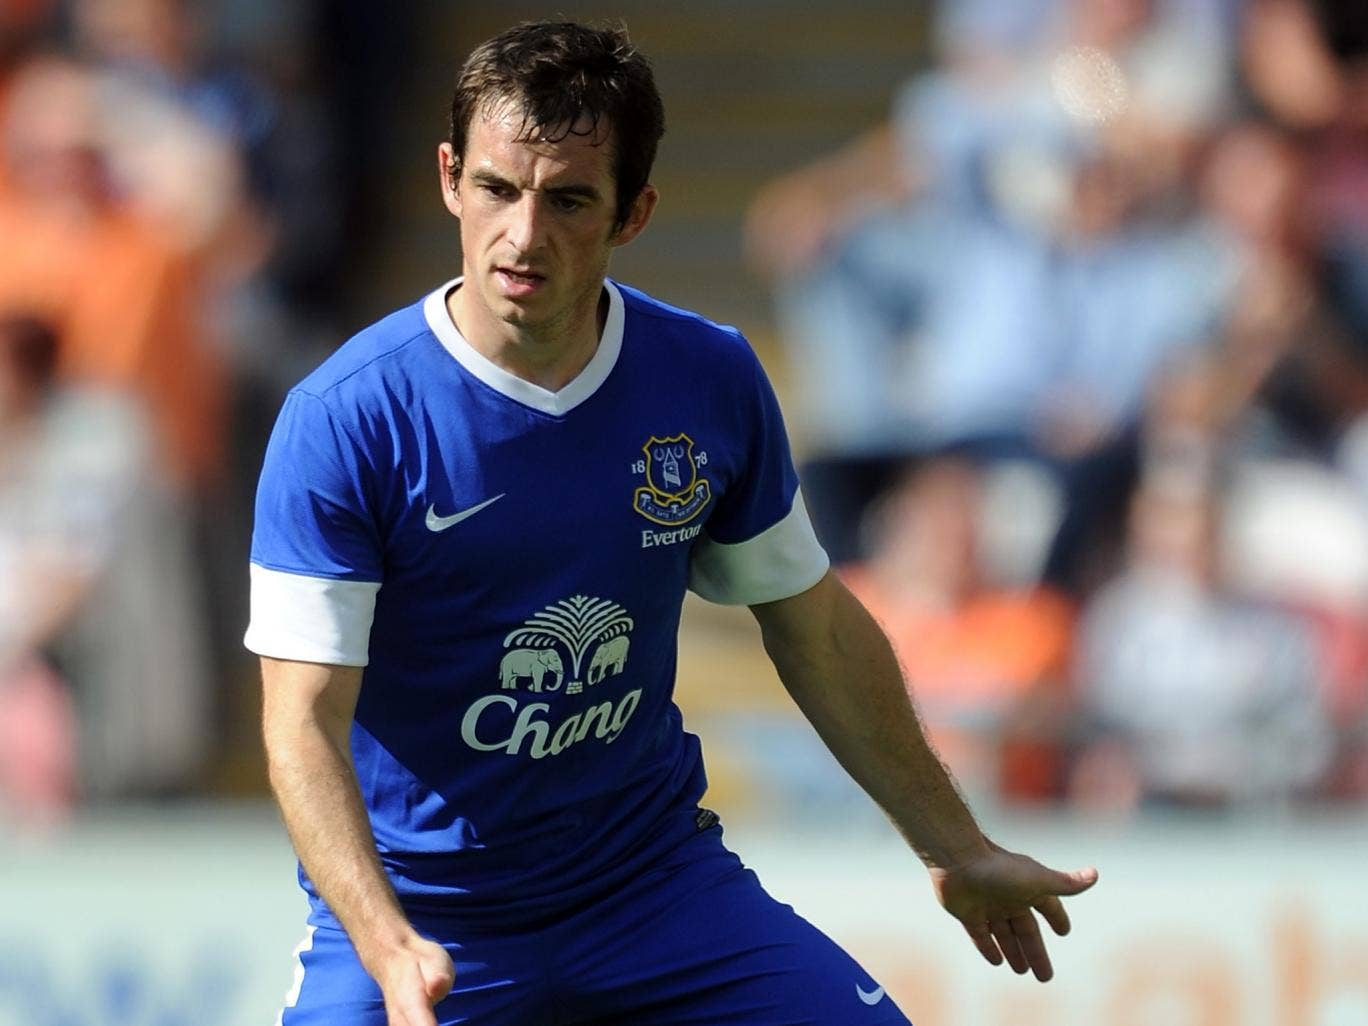 Everton's Leighton Baines has been linked with a move to Manchester UnitedEverton's Leighton Baines